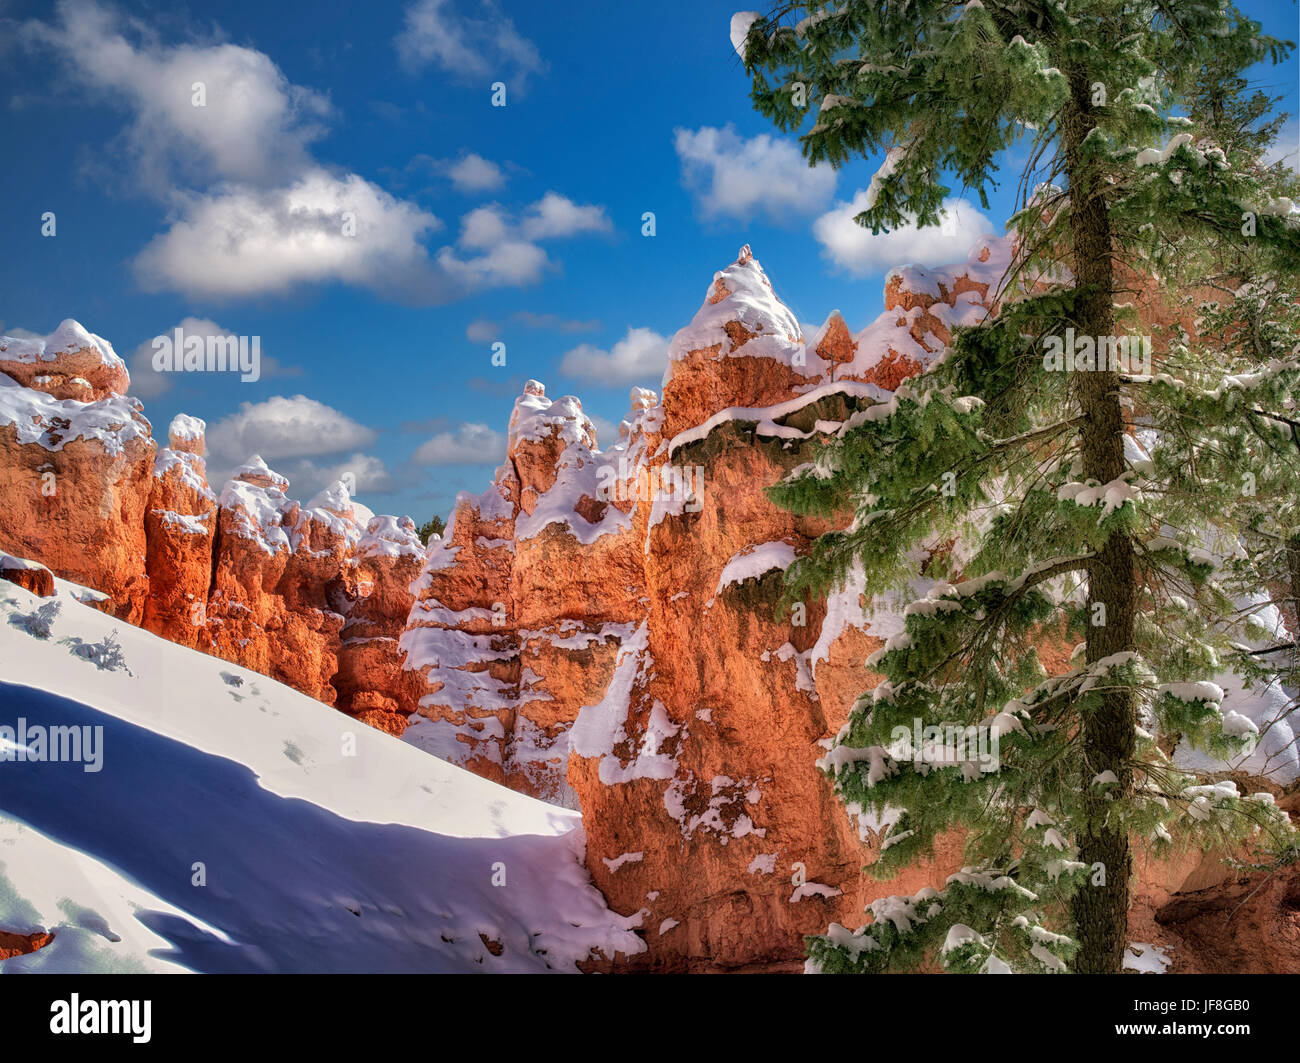 Snow in Bryce Canyon National Park, Utah - Stock Image